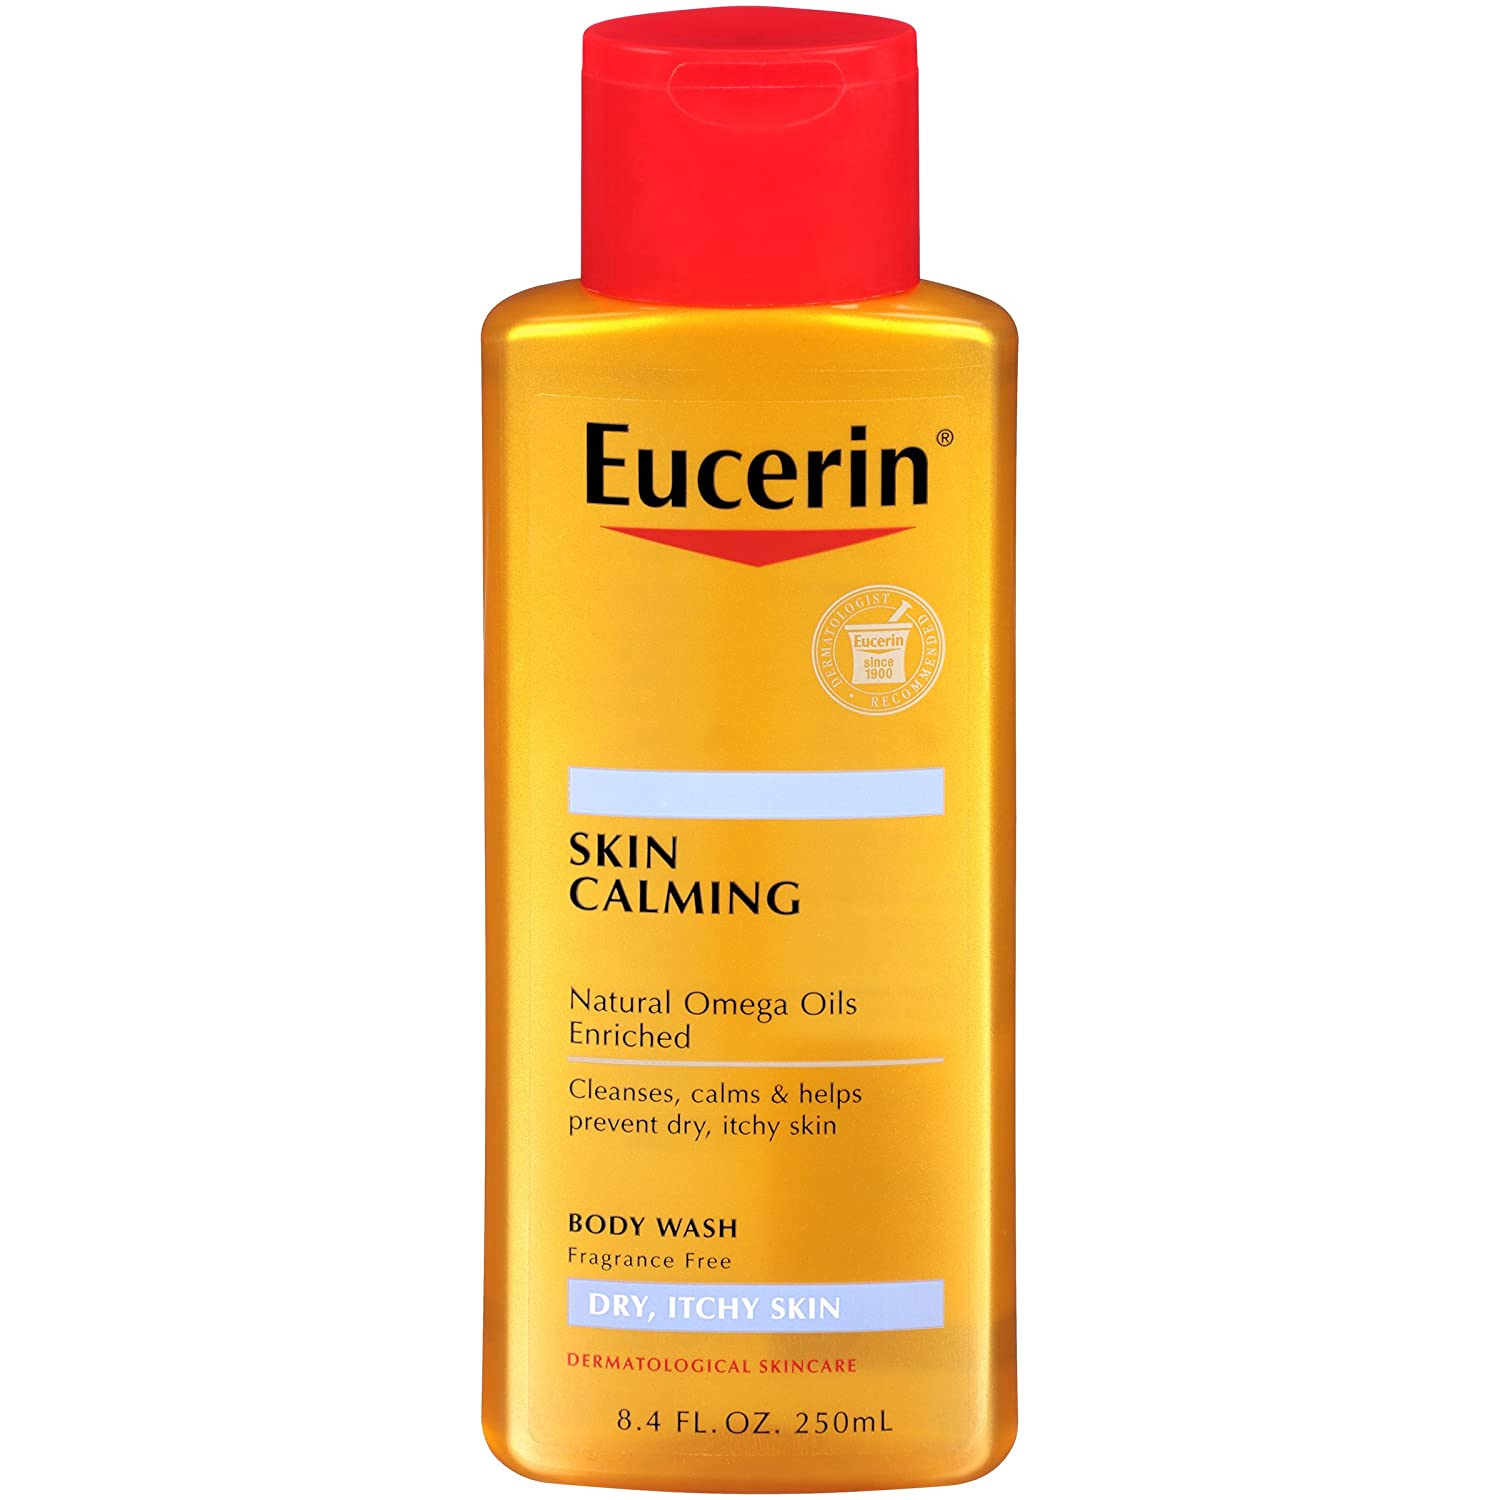 Eucerin Calming Body Wash Daily Shower Oil, 8.4 oz by Eucerin (Pack of 5) 63605